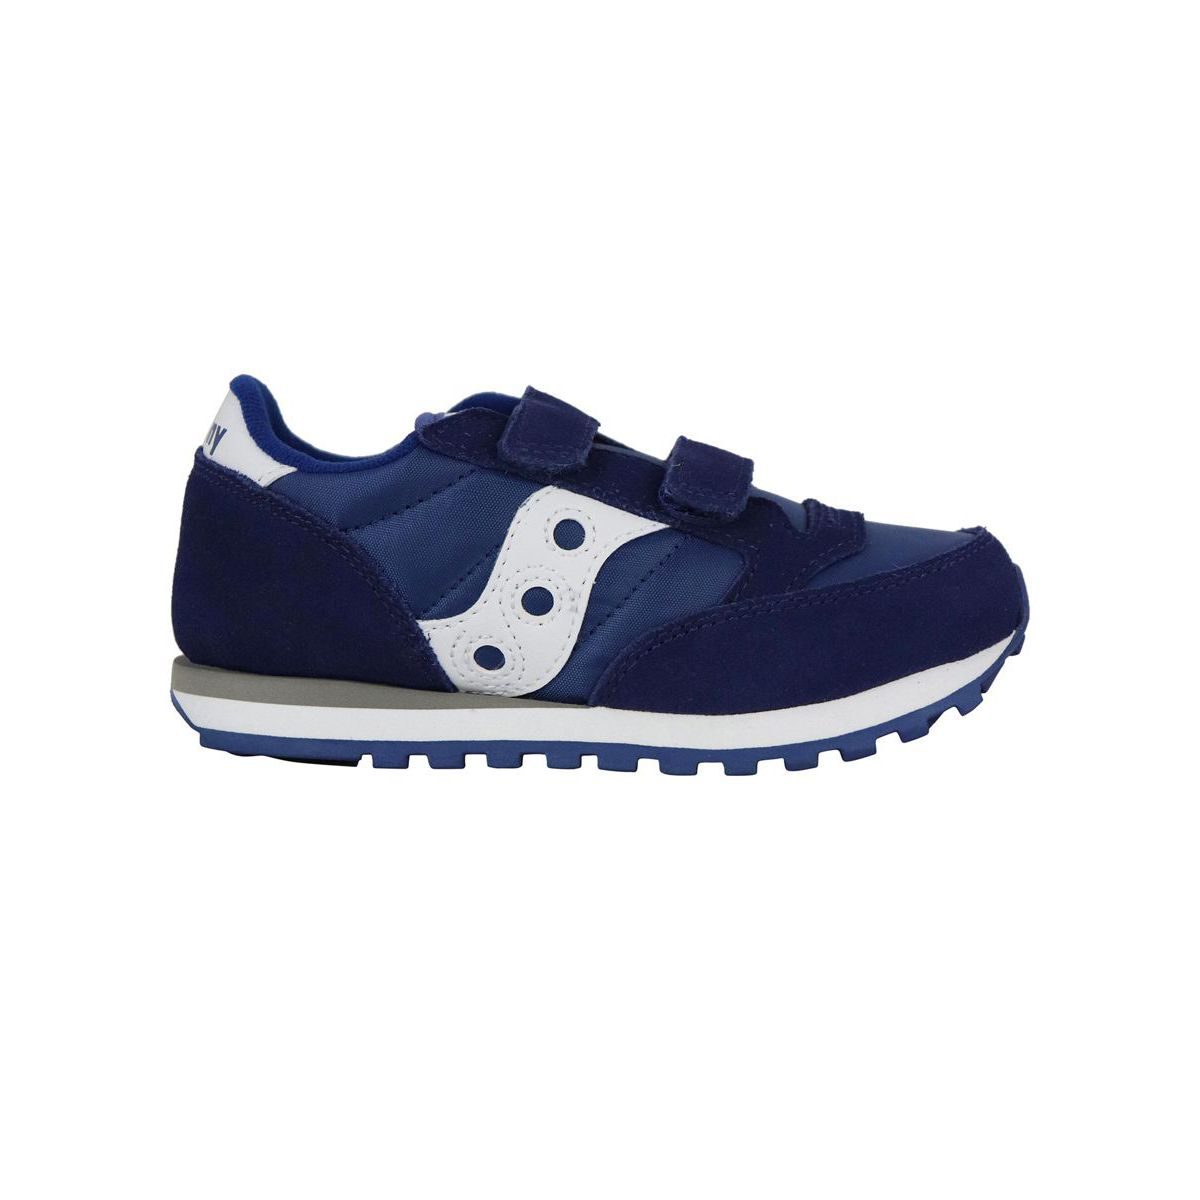 Jazz sneakers in suede with rips Blue Saucony